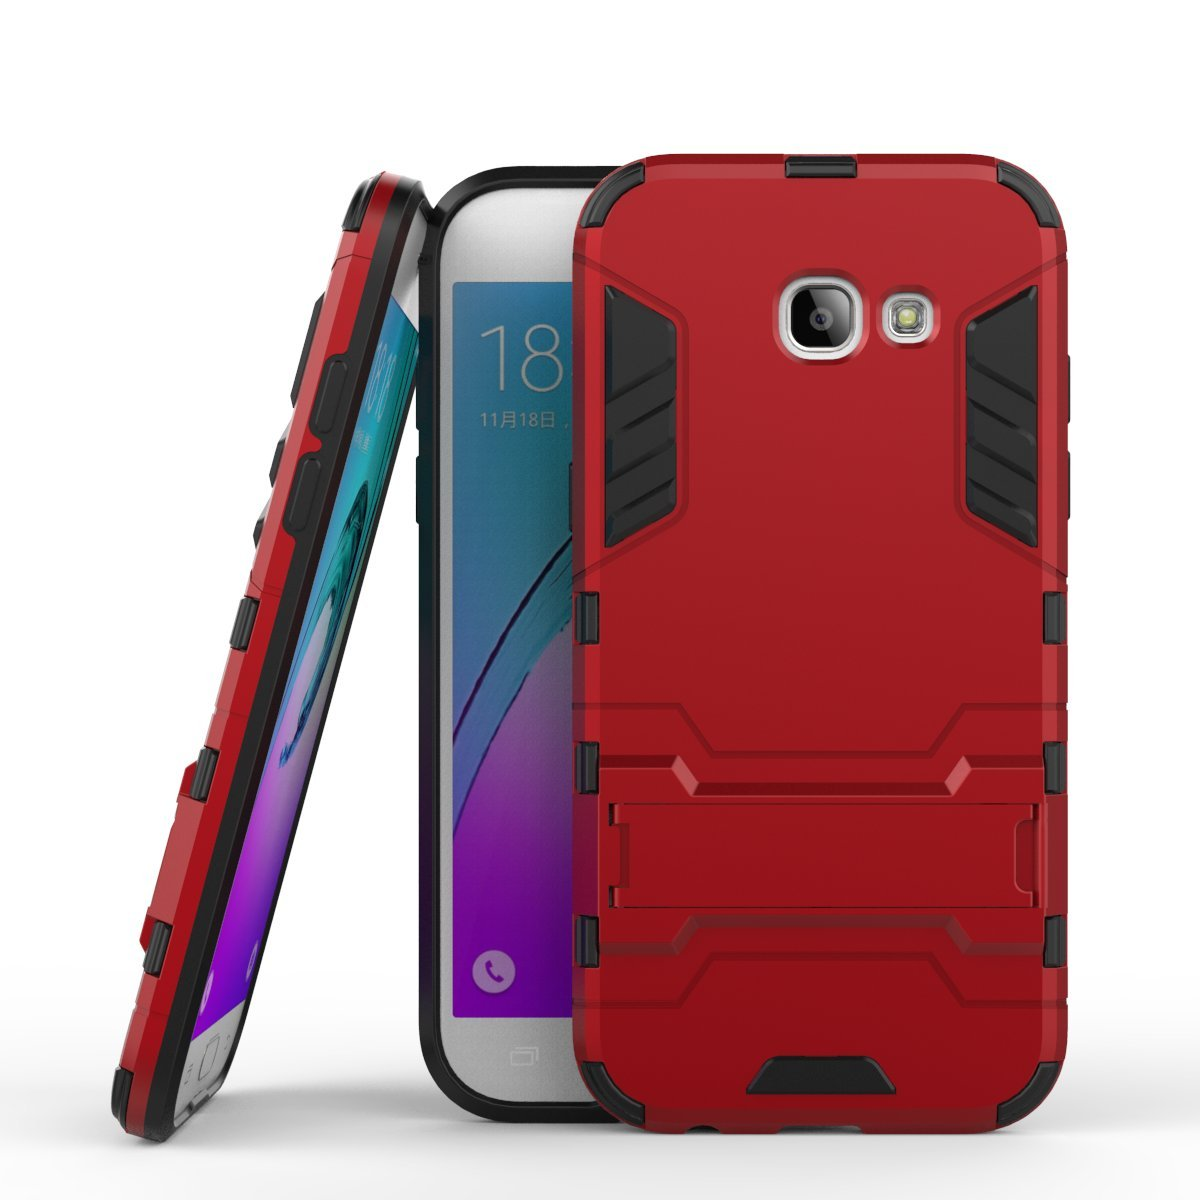 Galaxy A5 2017 Case, A520F Case, SsHhUu Shock Proof Cover Dual Layer Hybrid Armor Combo Protective Hard Case with Kickstand for Samsung Galaxy A5 2017 / A520F (5.2') Red shu-29247